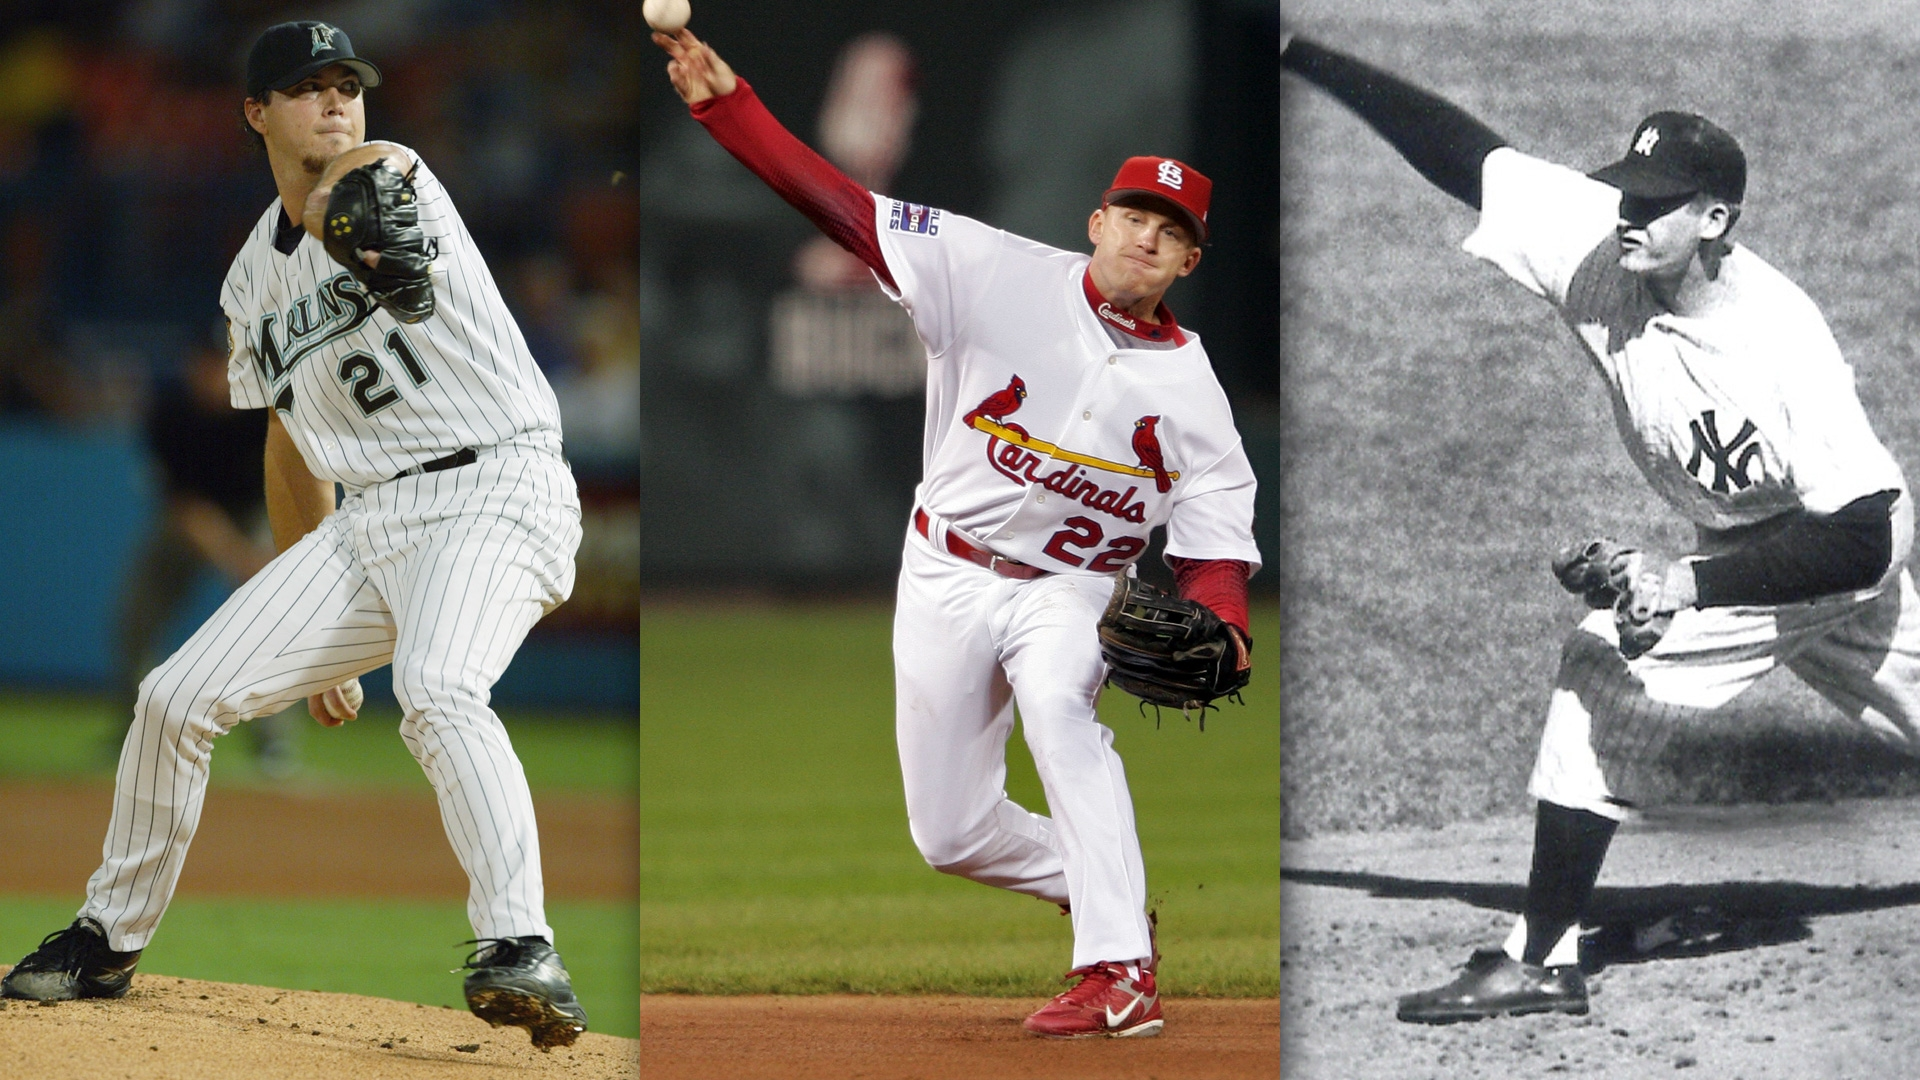 Split-josh-beckett-david-eckstein-don-larsen-102416-getty-ftrjpg_cytnr2odhb331atcf0kfjf769